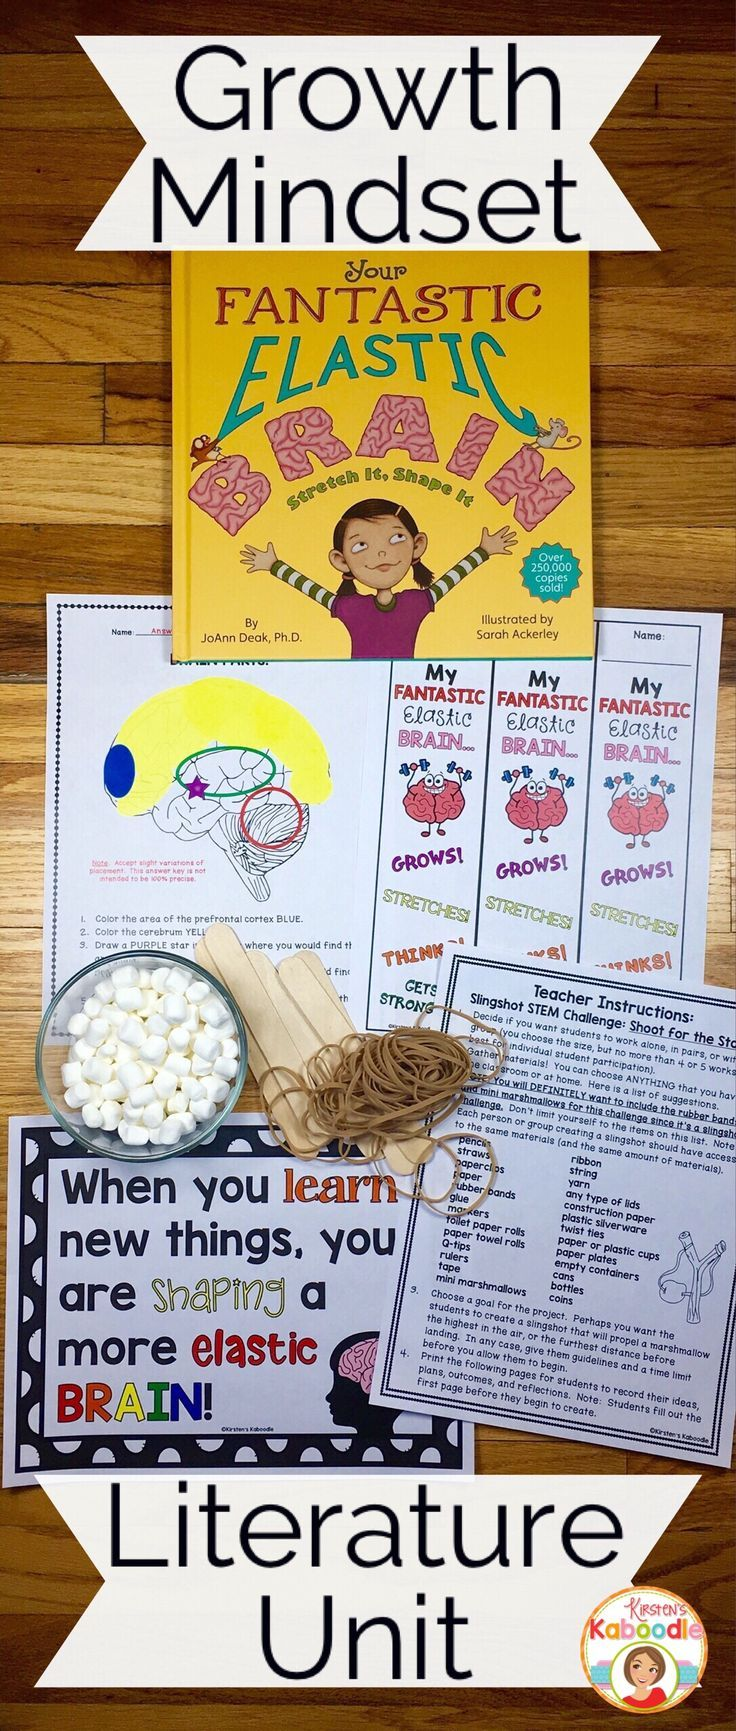 Are you teaching your students about growth mindset? Your Fantastic Elastic Brain by JoAnn Deak is a perfect segue for teaching your students the power of growth mindset. Conceptually, these ideas are perfect for any level, but this literature unit was created for 2nd-6th graders in mind. Infused with reflections, challenges (including a STEM challenge), and opportunities to identify and clarify growth mindset vs fixed mindset, your students are sure to learn and have a great deal of fun!